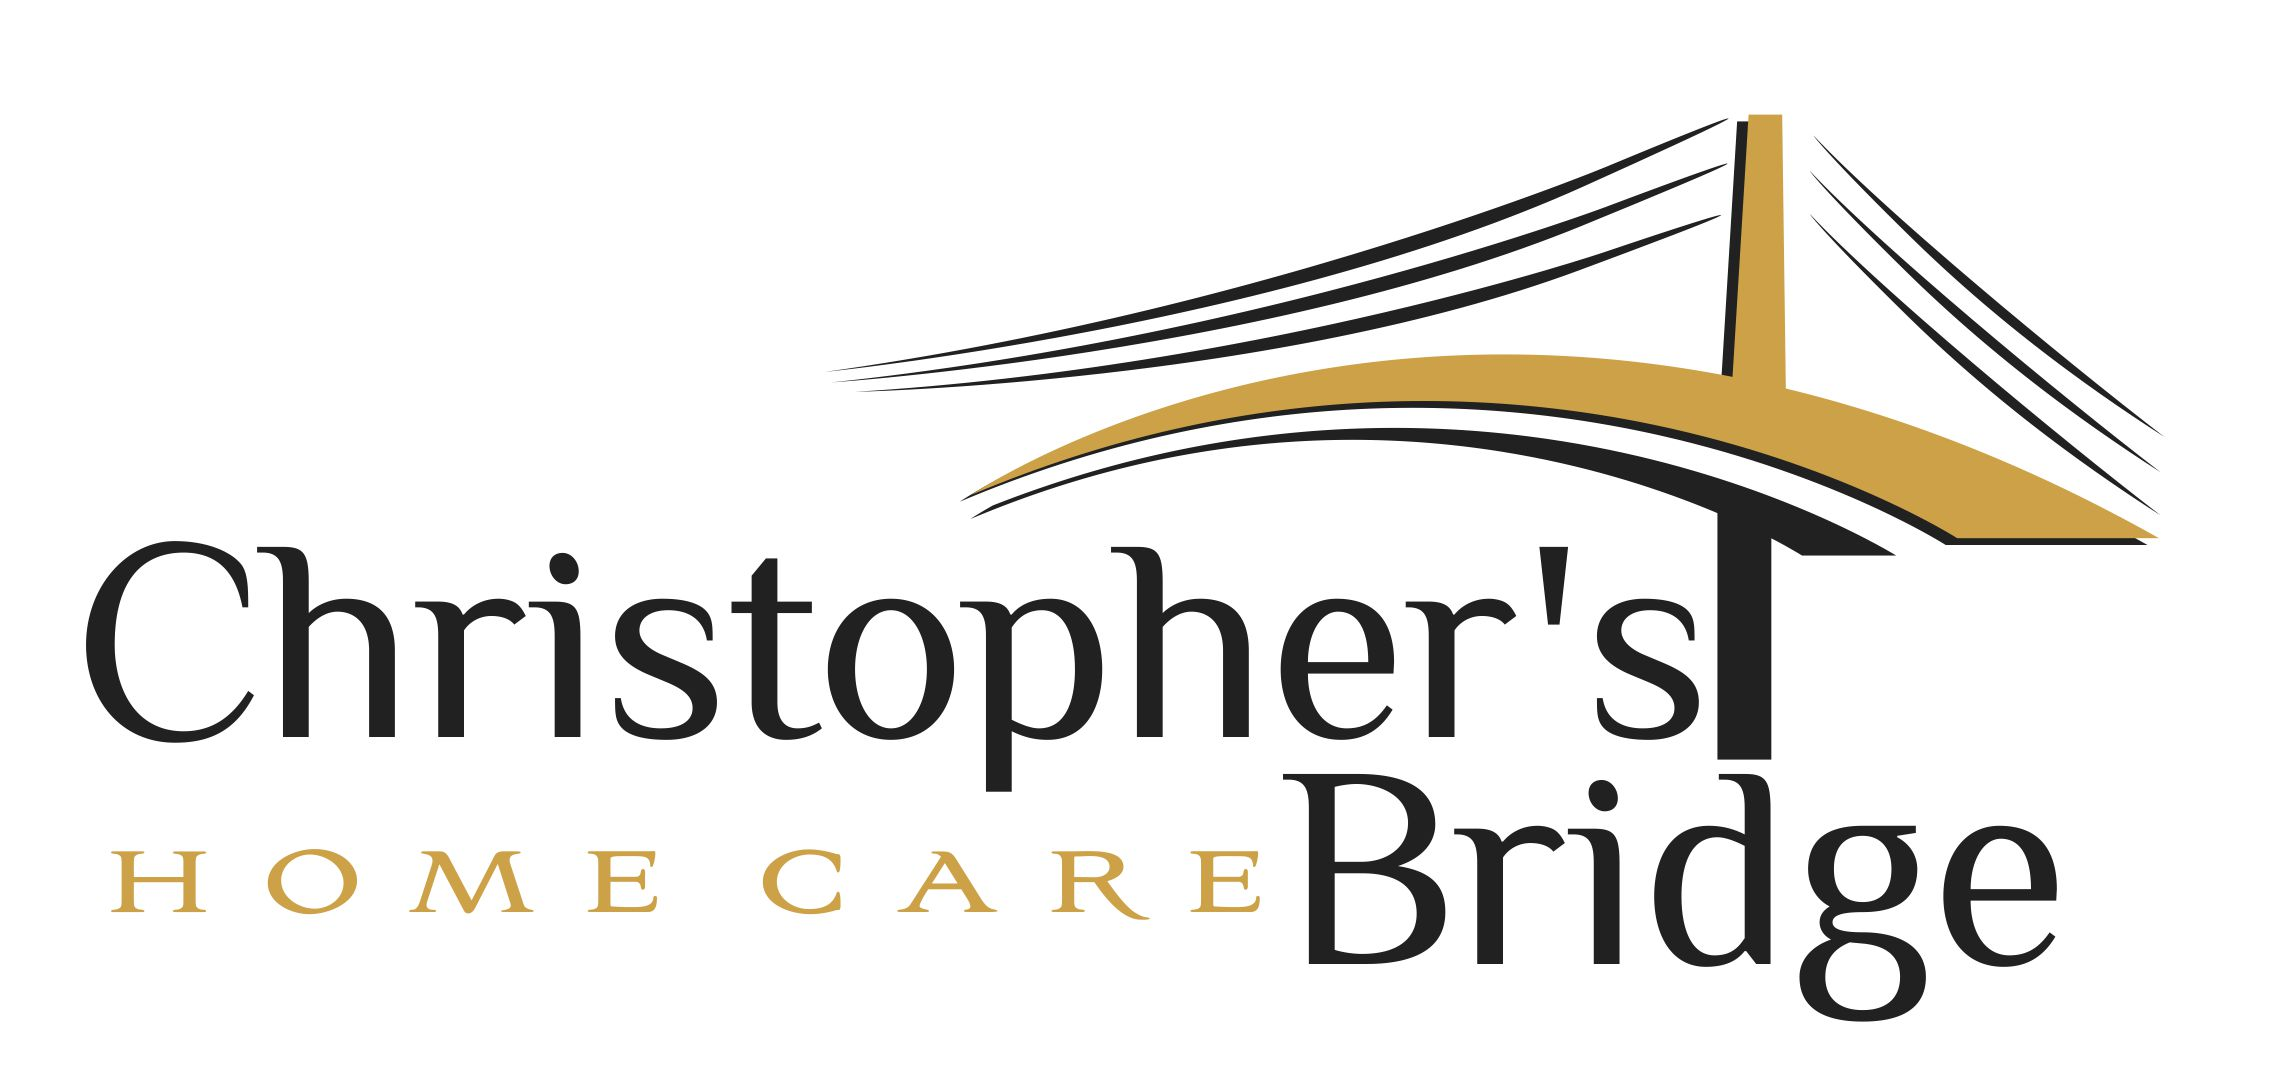 Christopher's Bridge Home Care